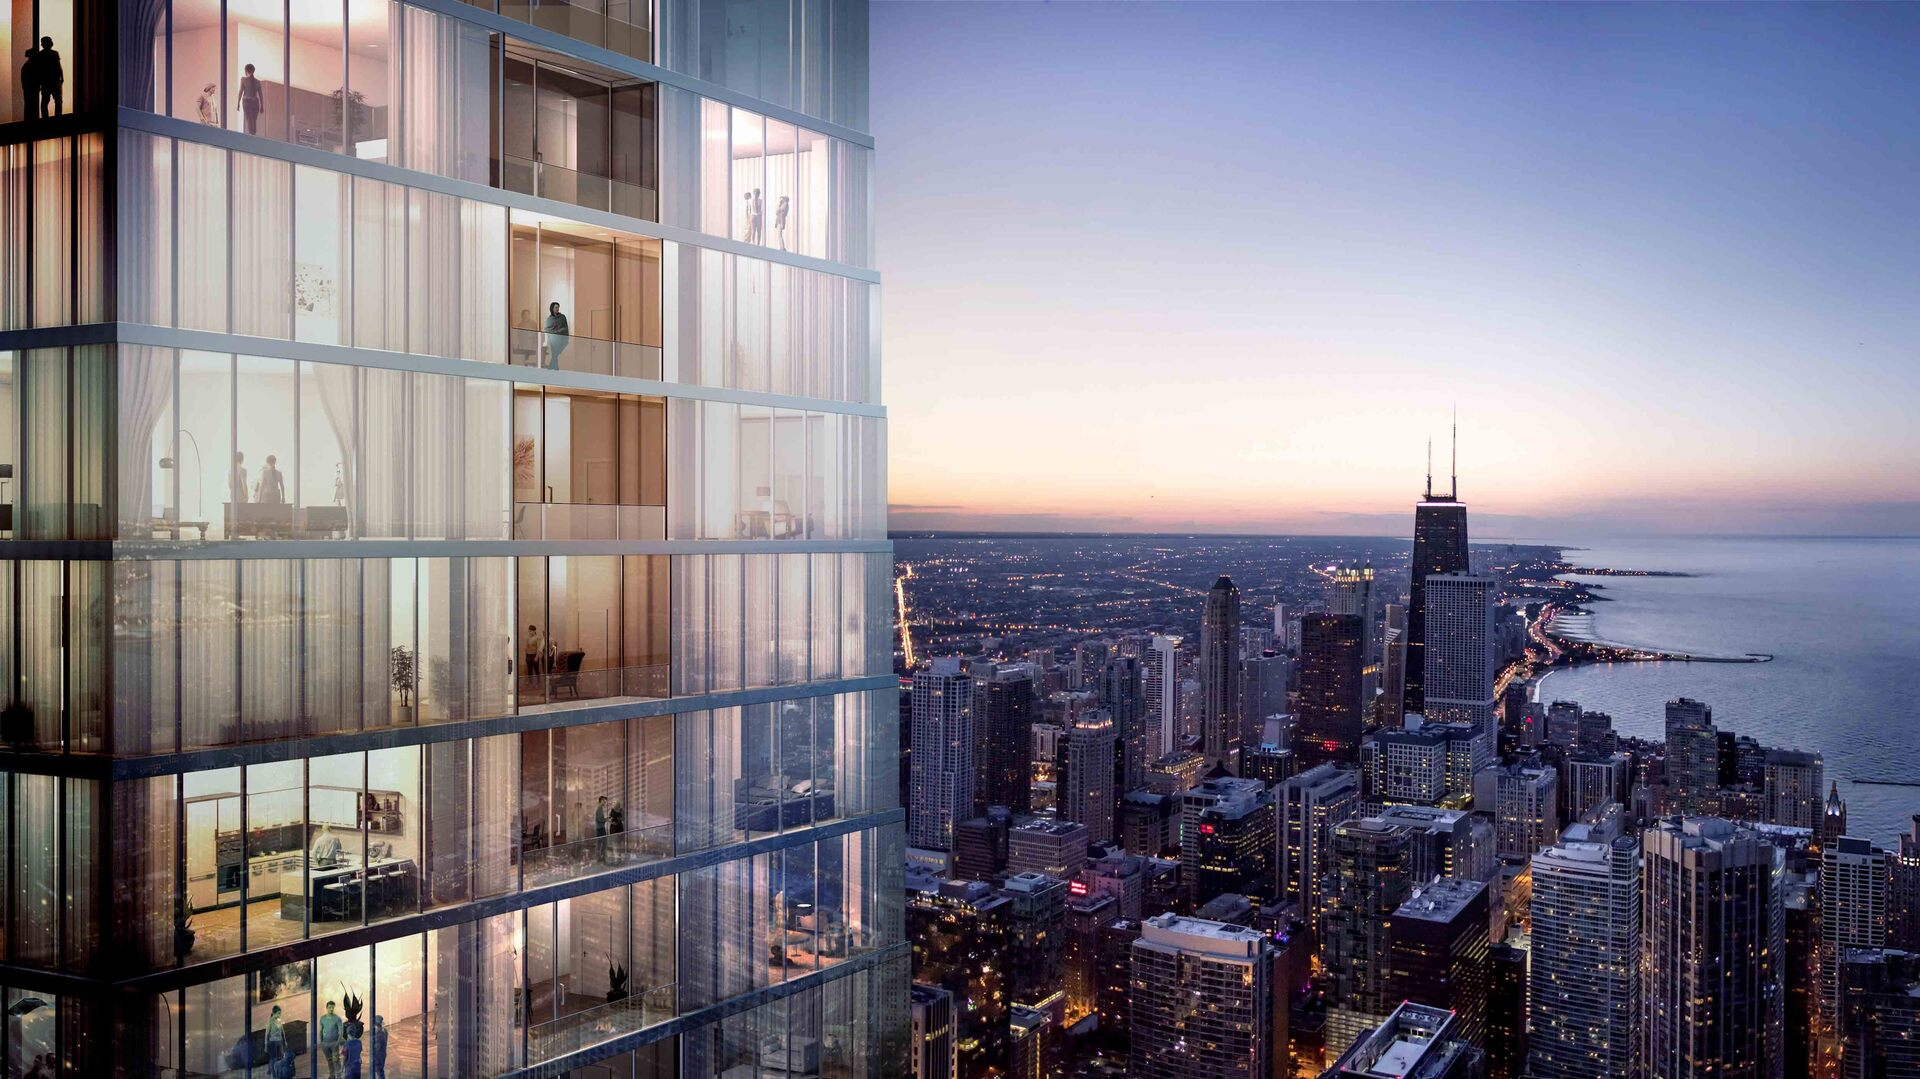 An unparalleled luxury residential high-rise condo building and five-star hotel known as Vista Tower is poised to be one of Chicago's most memorable landmarks. A masterpiece of design by award-winning architect Jeanne Gang and world-renowned interior design specialists, Hirsh Bedner Associates, Vista Residences bring a new level of modern ultra-luxury living to the Chicago skyline. Each home offers elegantly adorned interiors, exquisitely crafted finishes, and sweeping panoramic views unlike any other in the city.